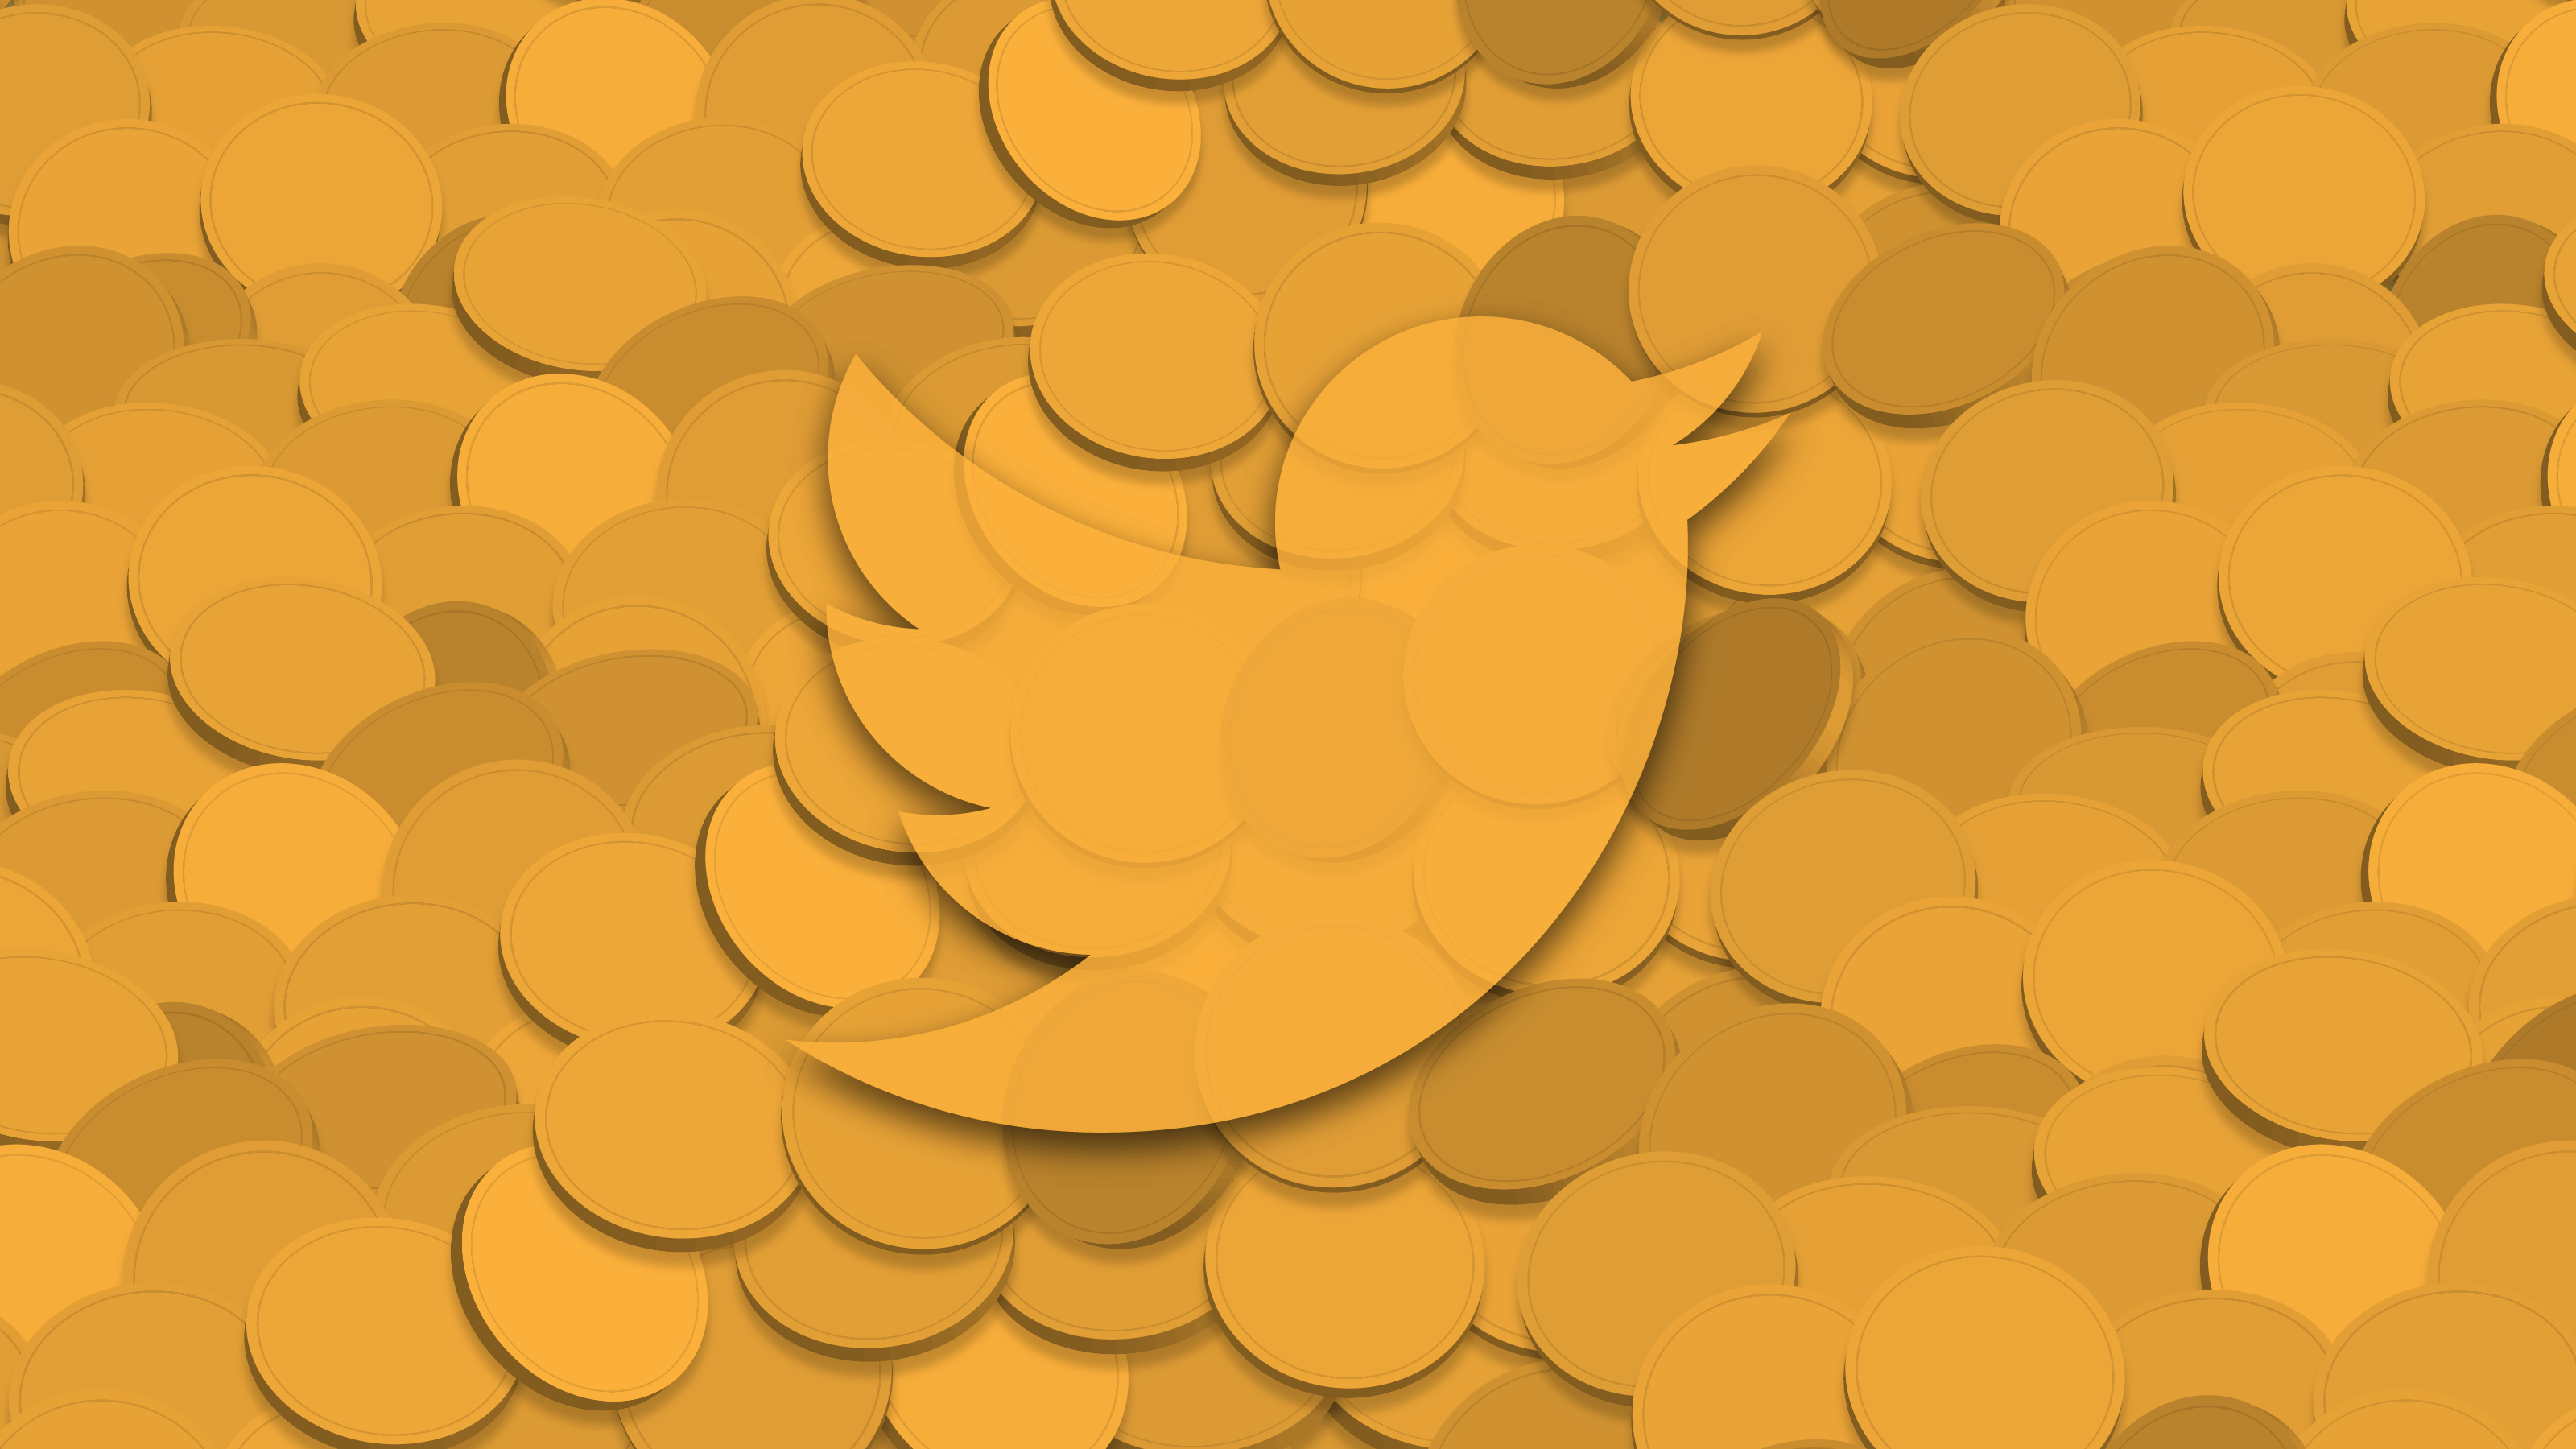 Twitter to start banning cryptocurrency ads, joining Google and Facebook